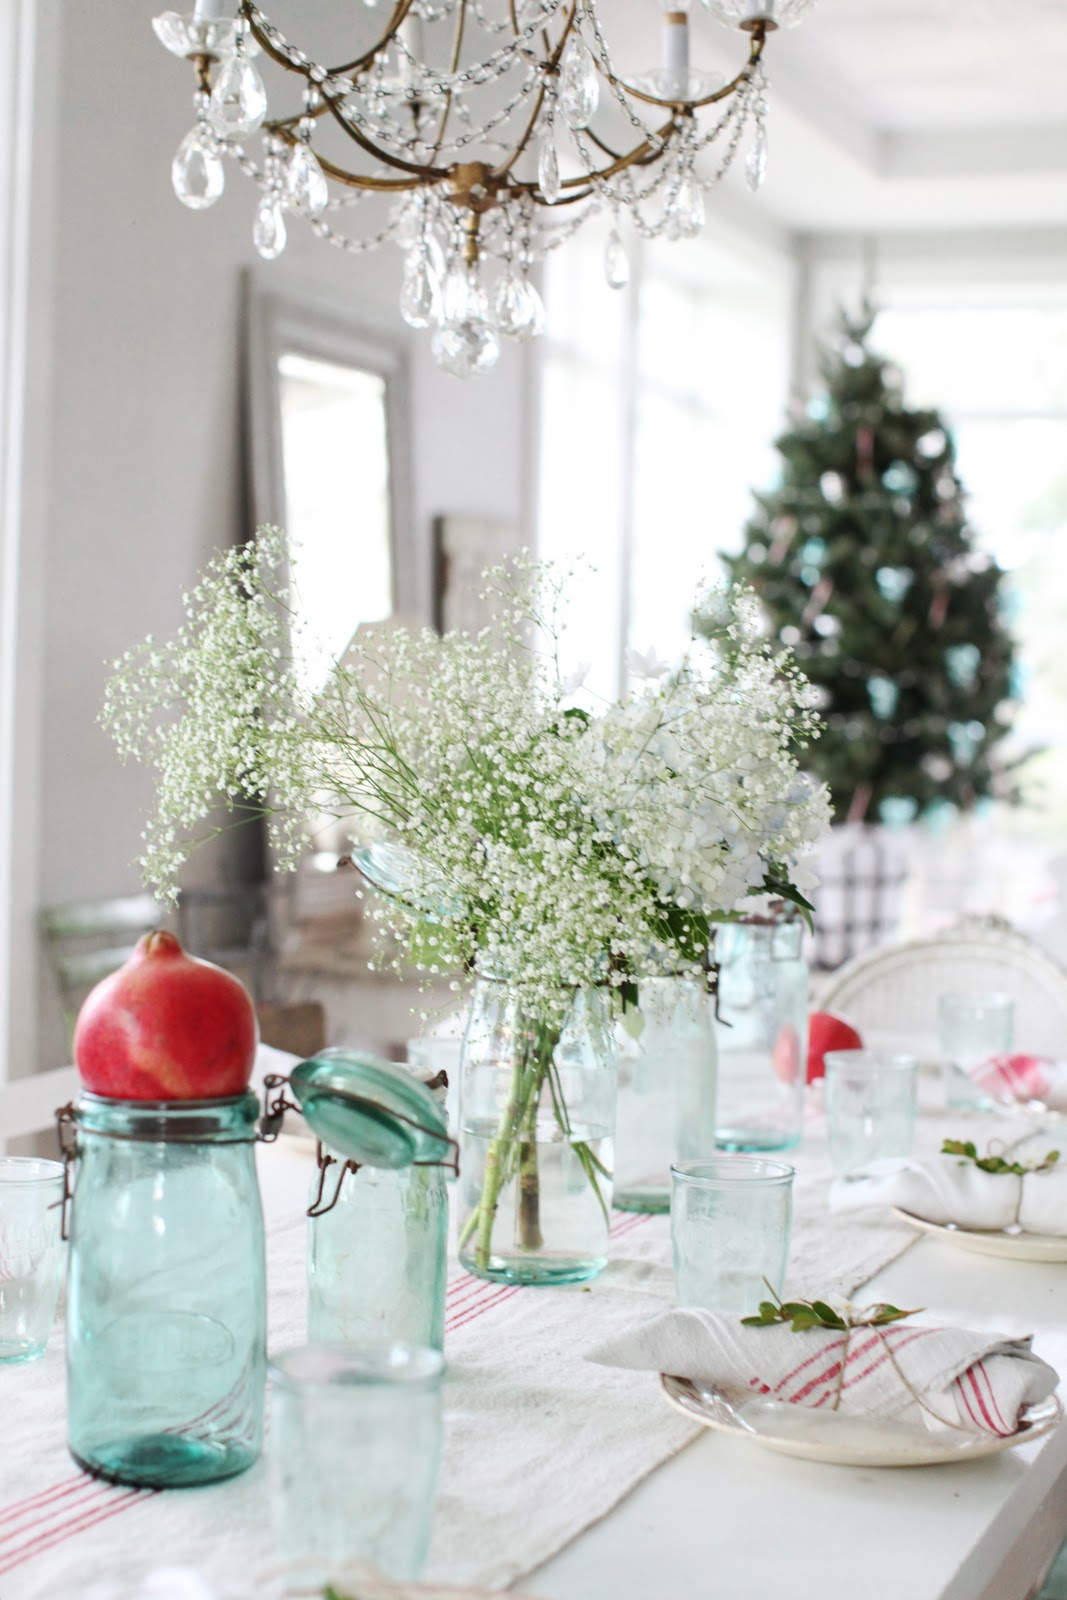 Dreamy whites a simple christmas table setting - Christmas table setting ideas ...